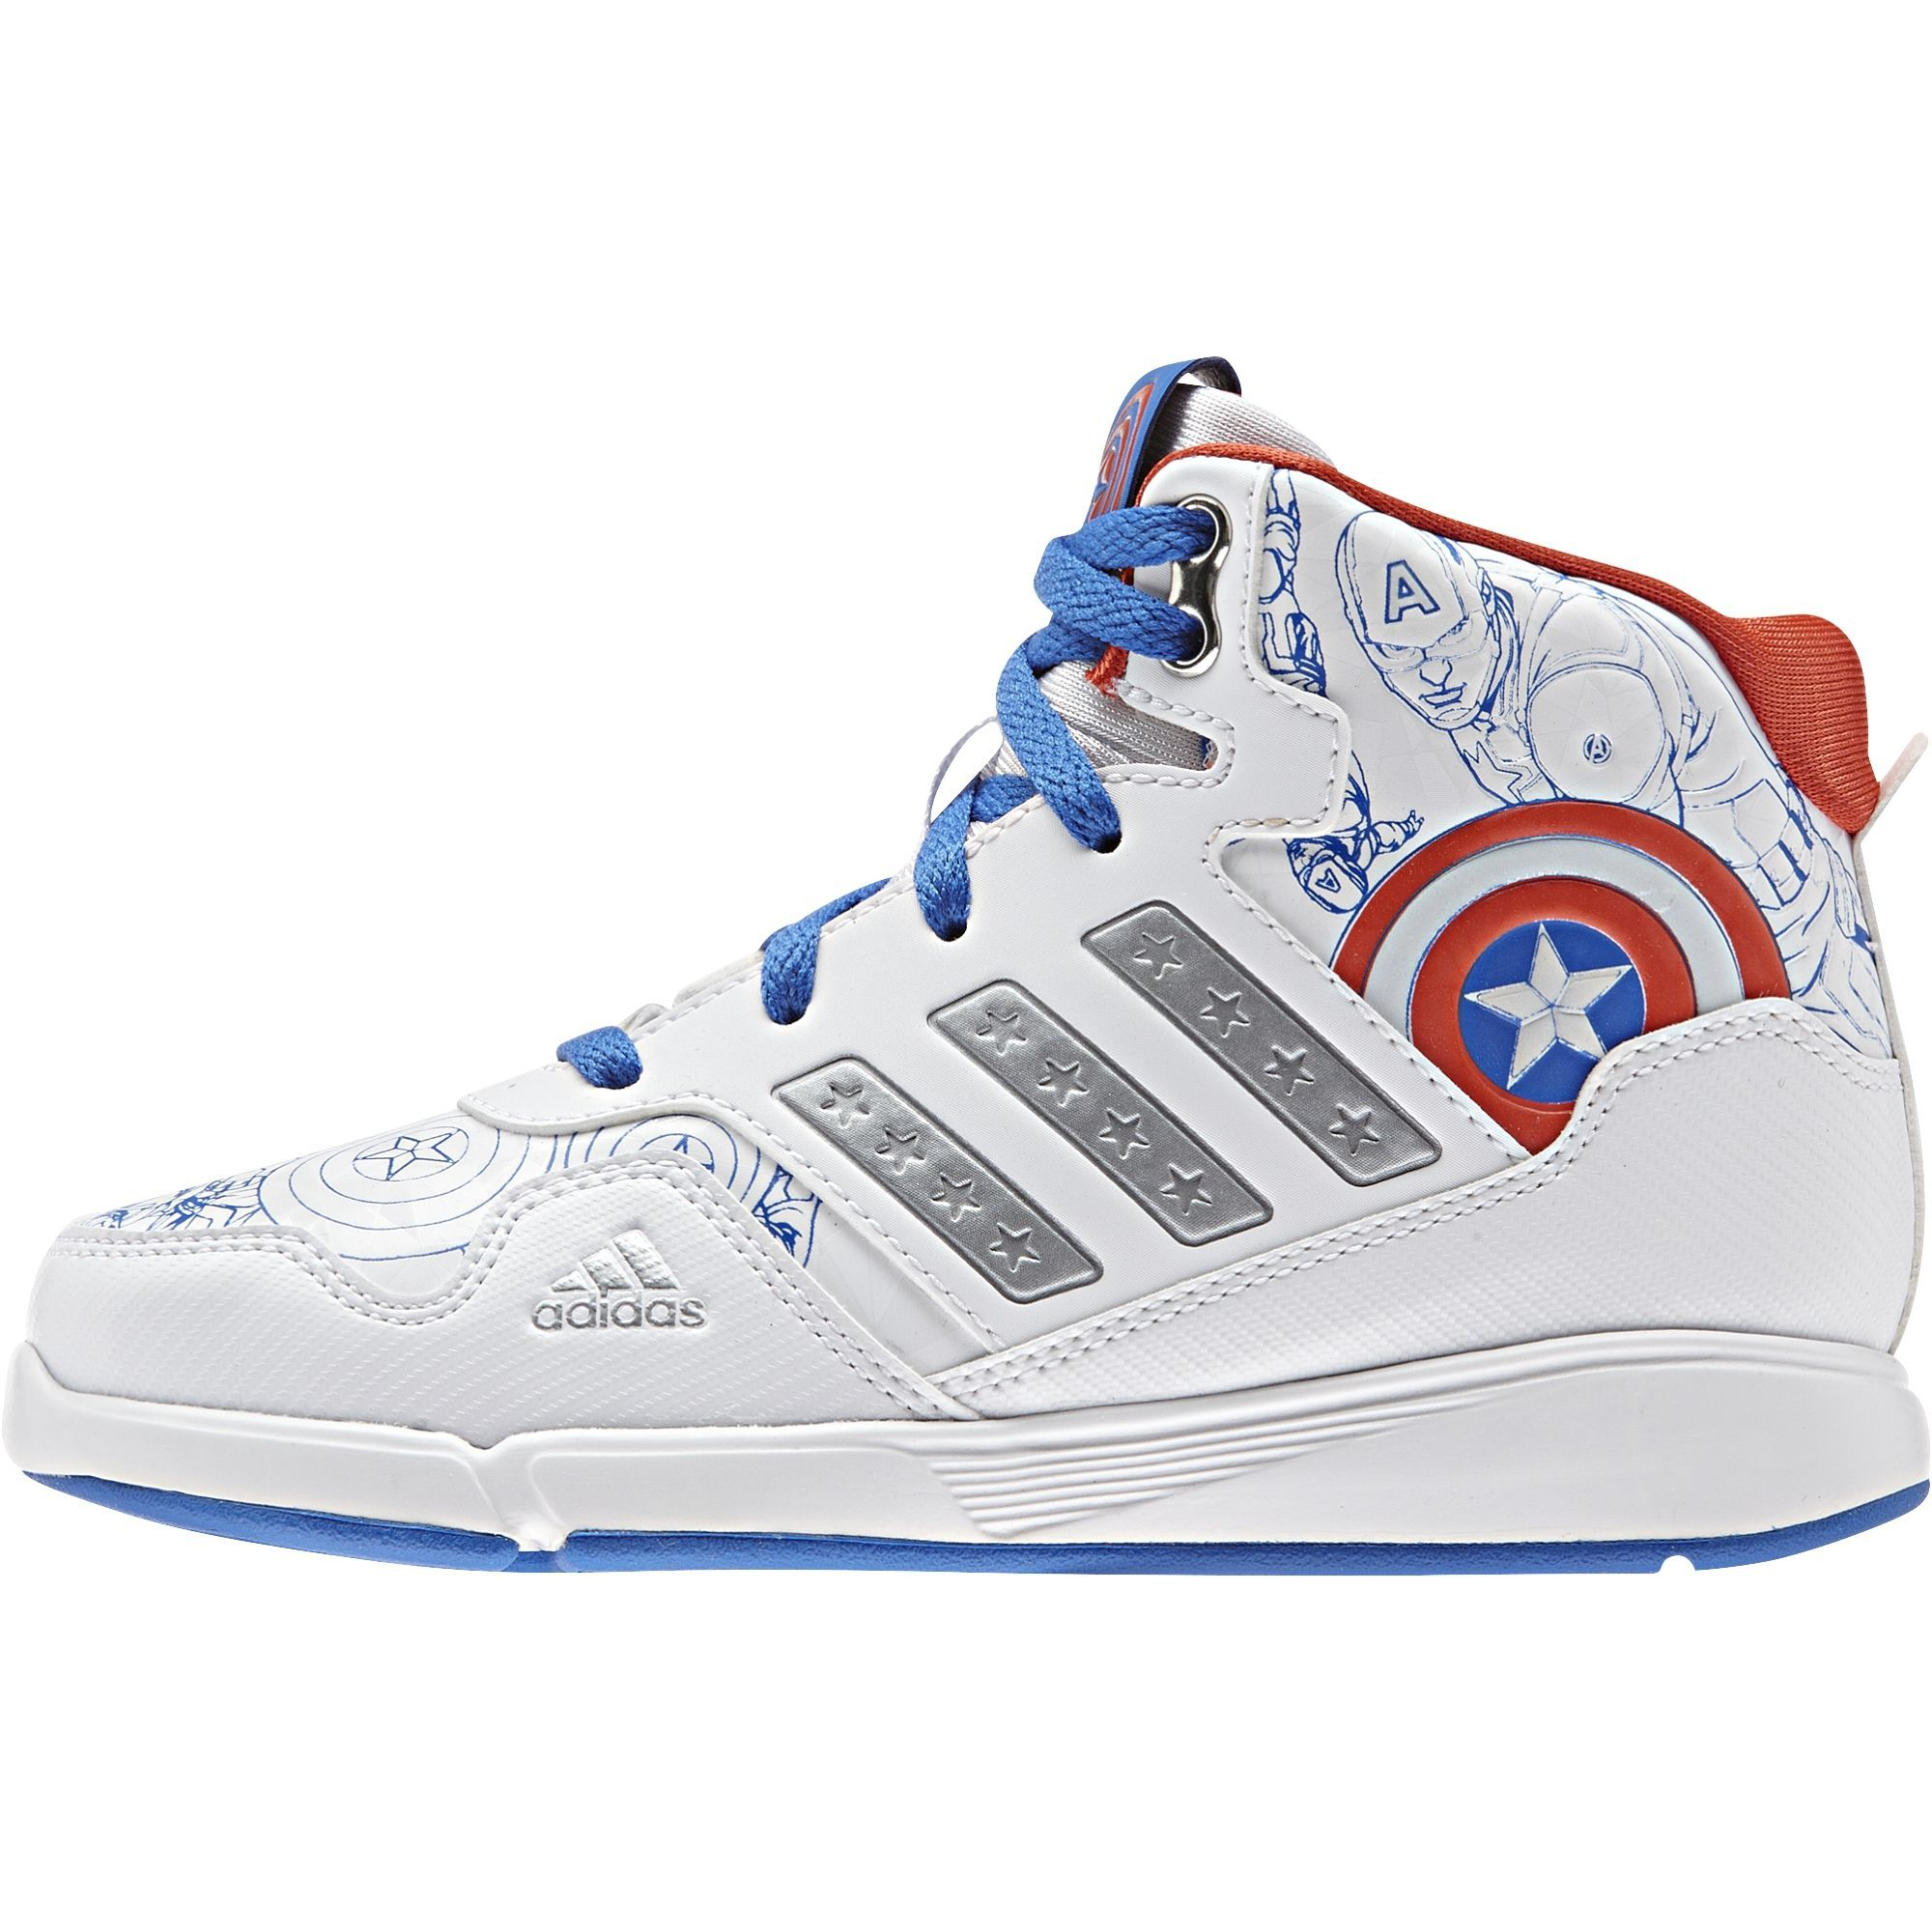 adidas limited edition marvel avengers shoes